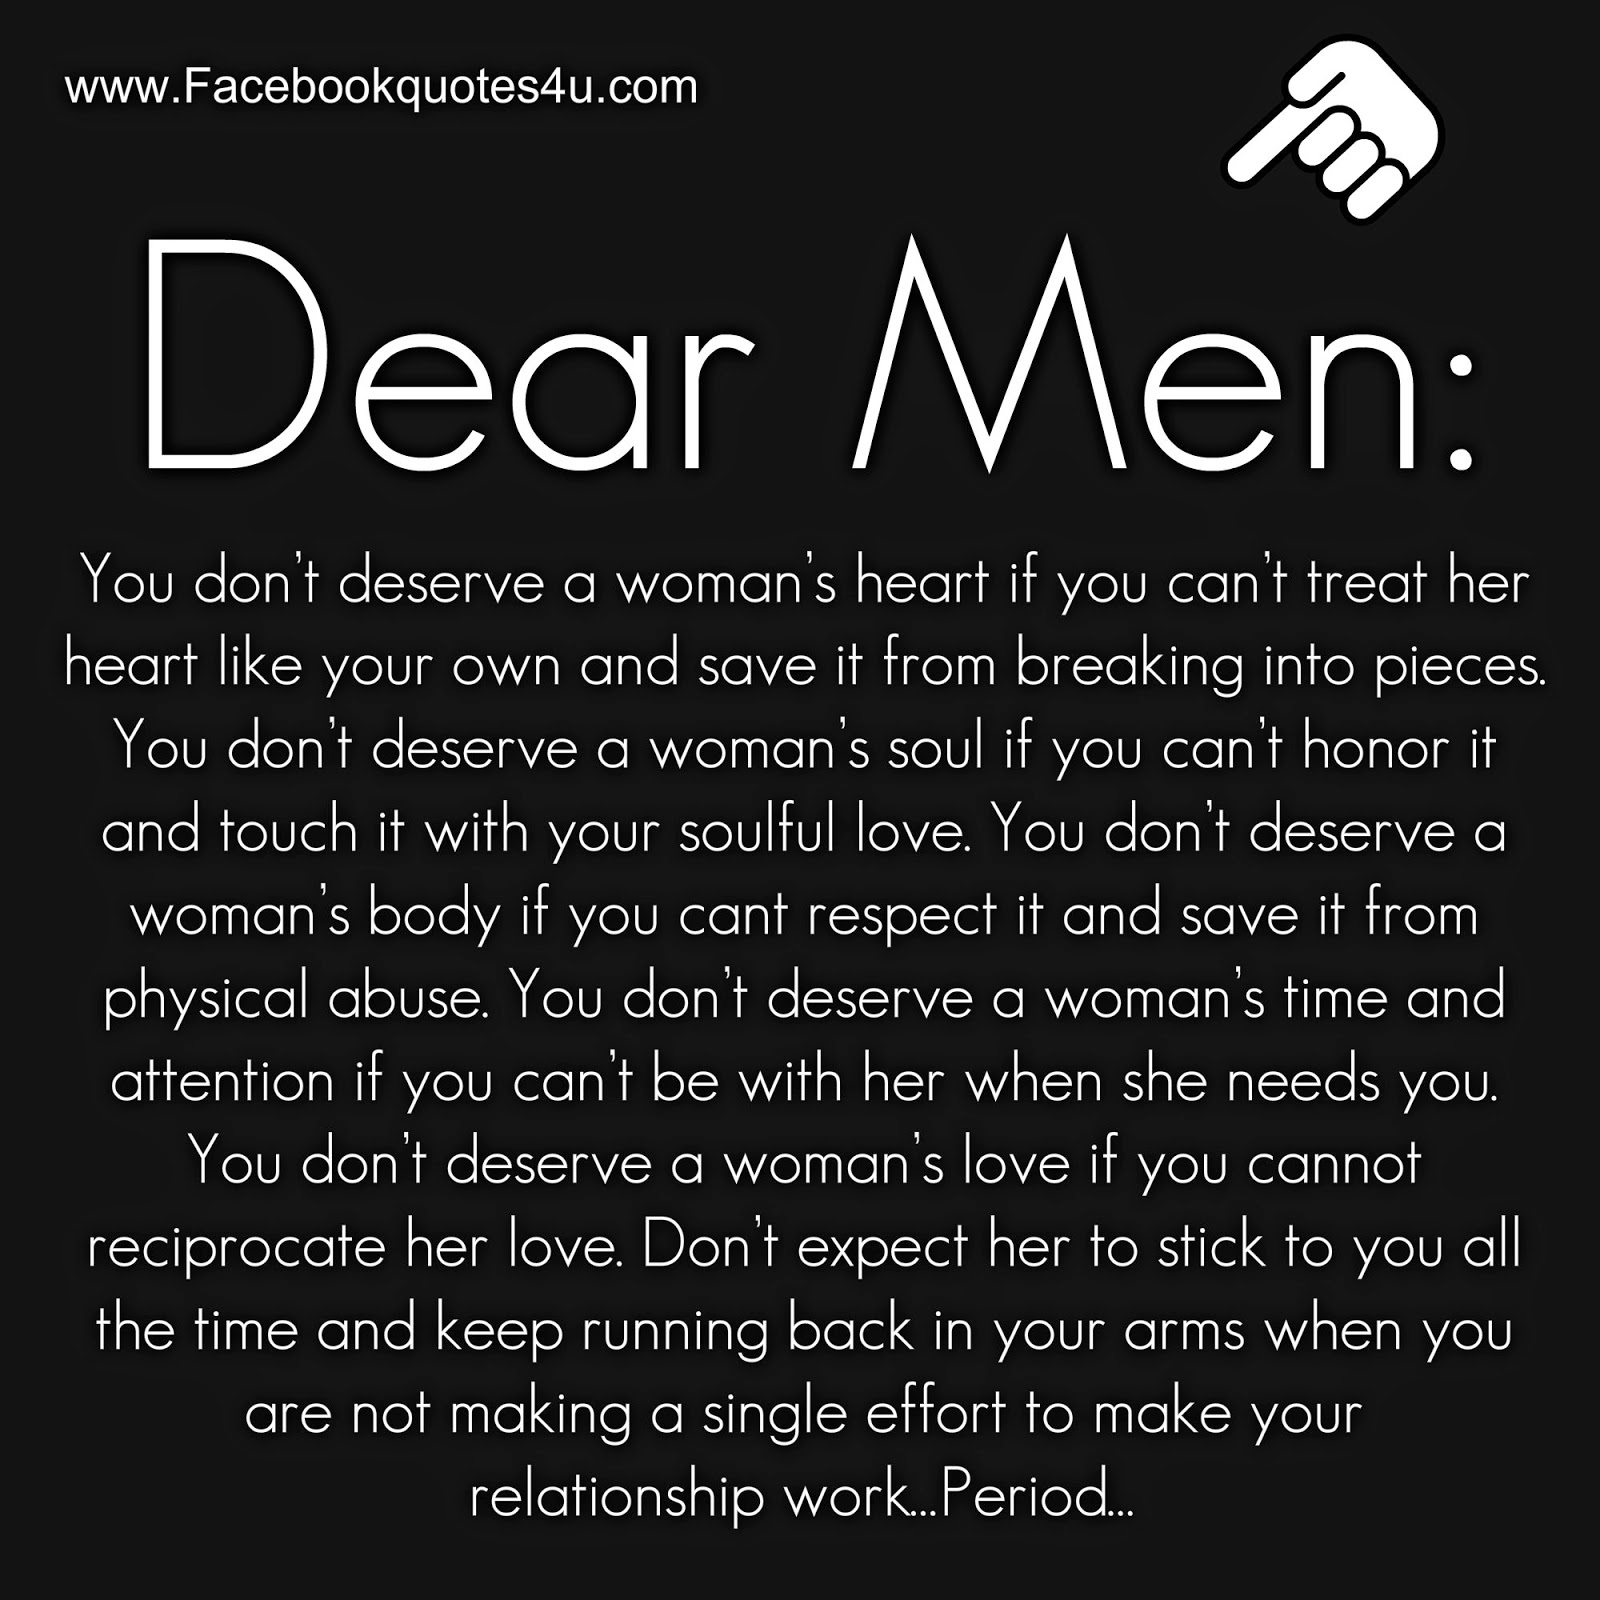 How To Love A Woman Quotes Mesmerizing Quotes You Don't Deserve A Woman's Heart Like This